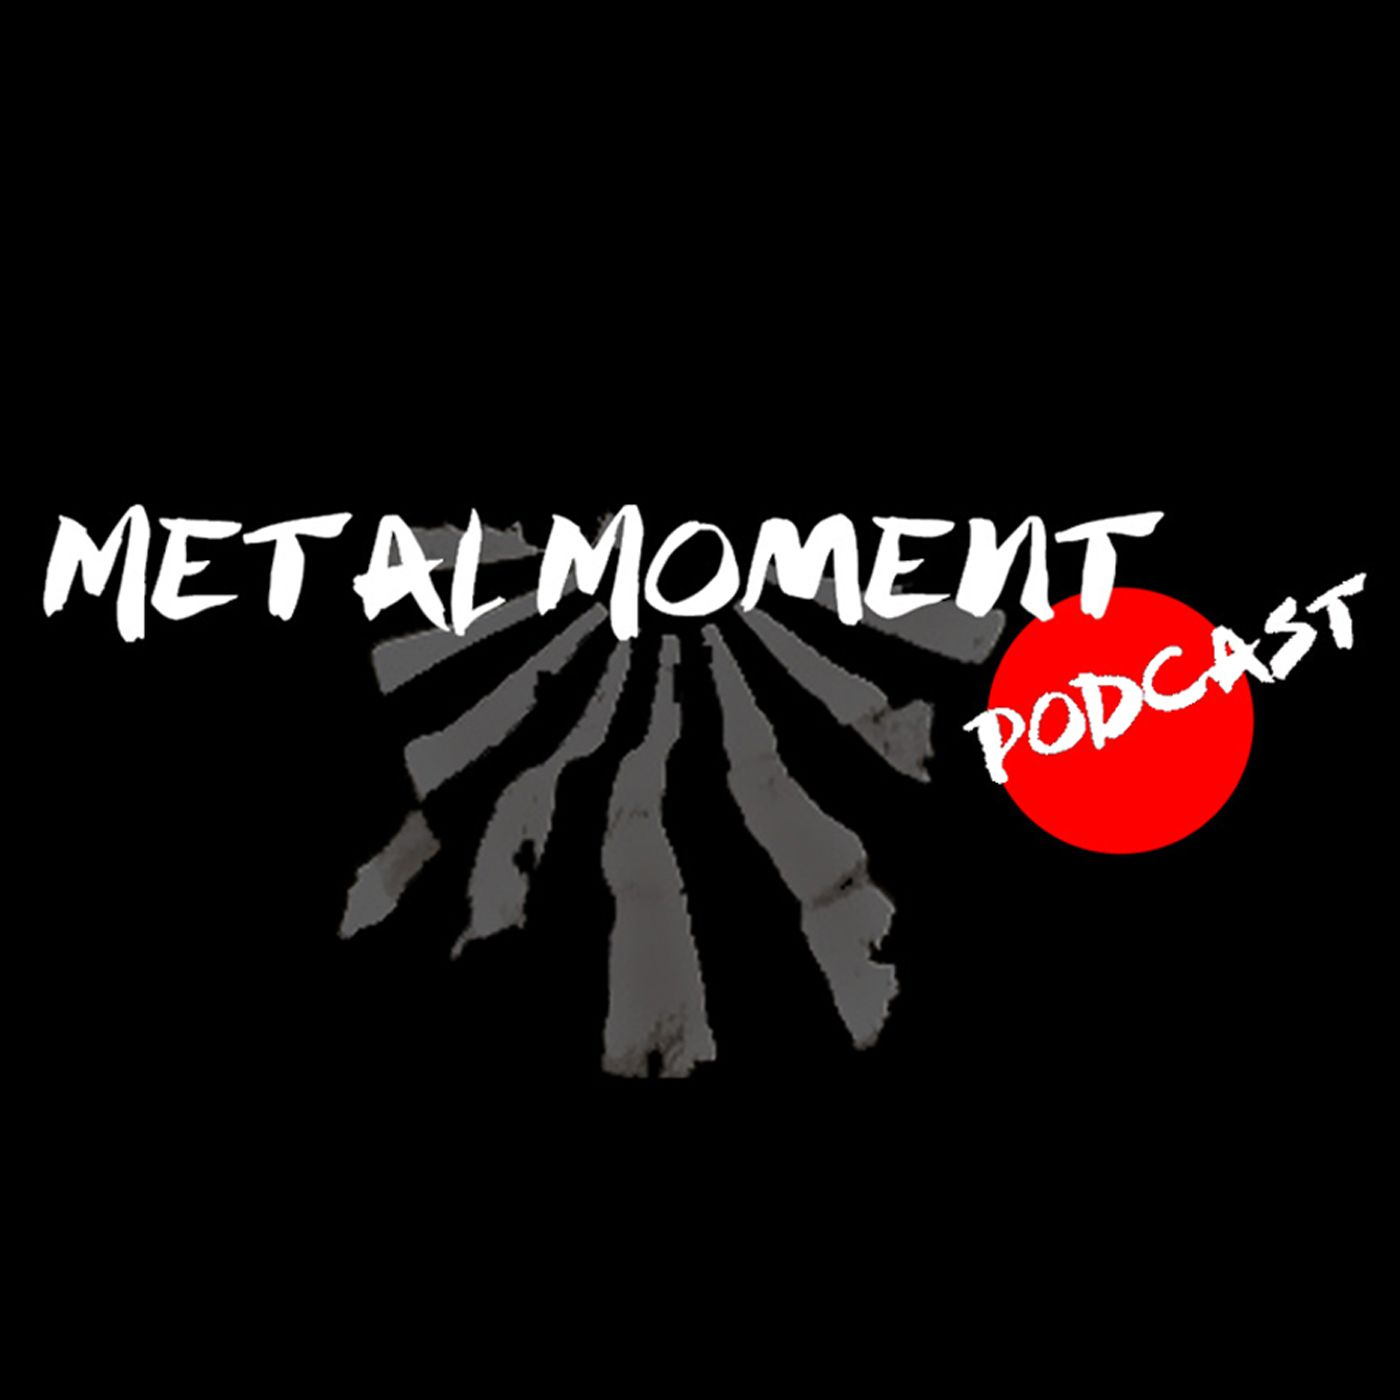 Metal Moment Podcast - English & Japanese Bilingual Show / Interviews / Guitar Talk / Beer / メタル / ビール